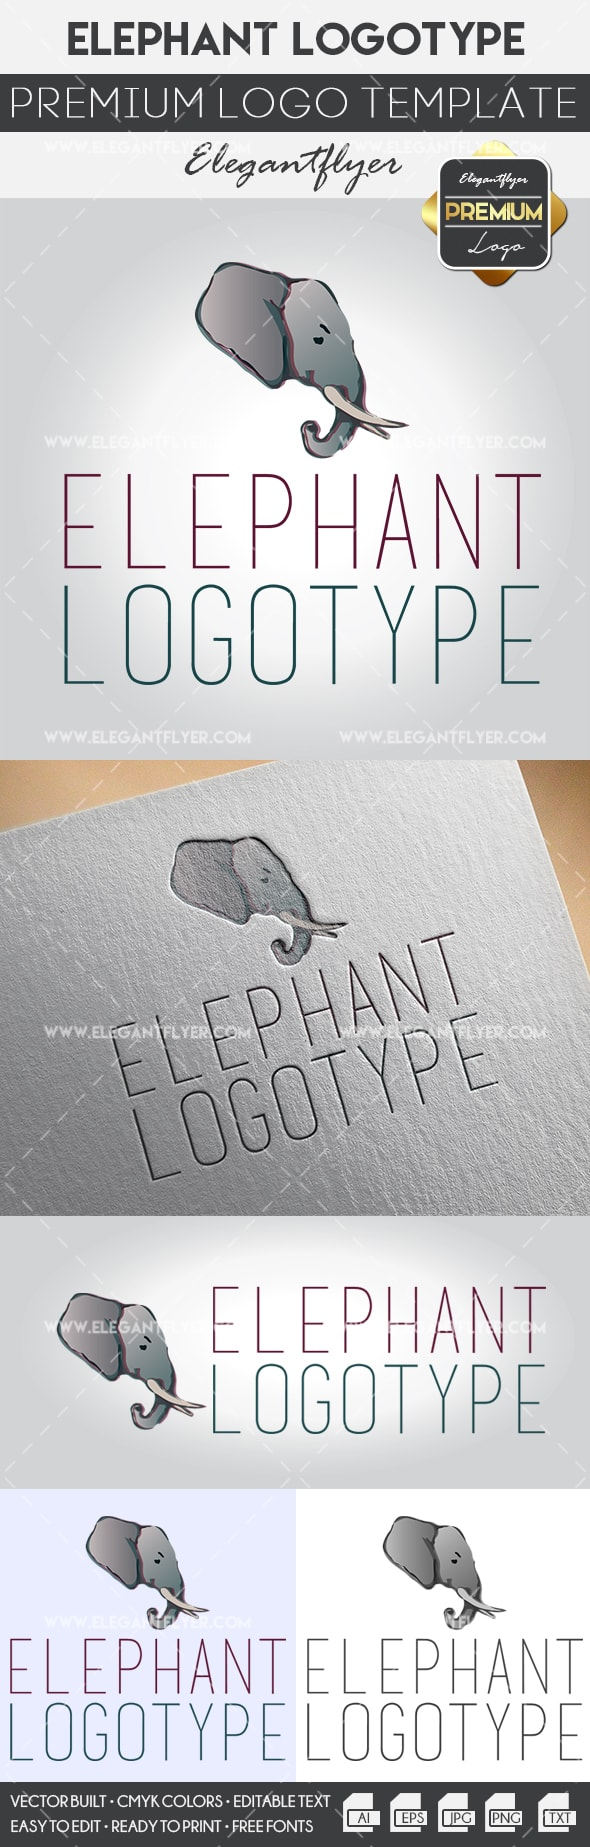 Logo Template for Elephant